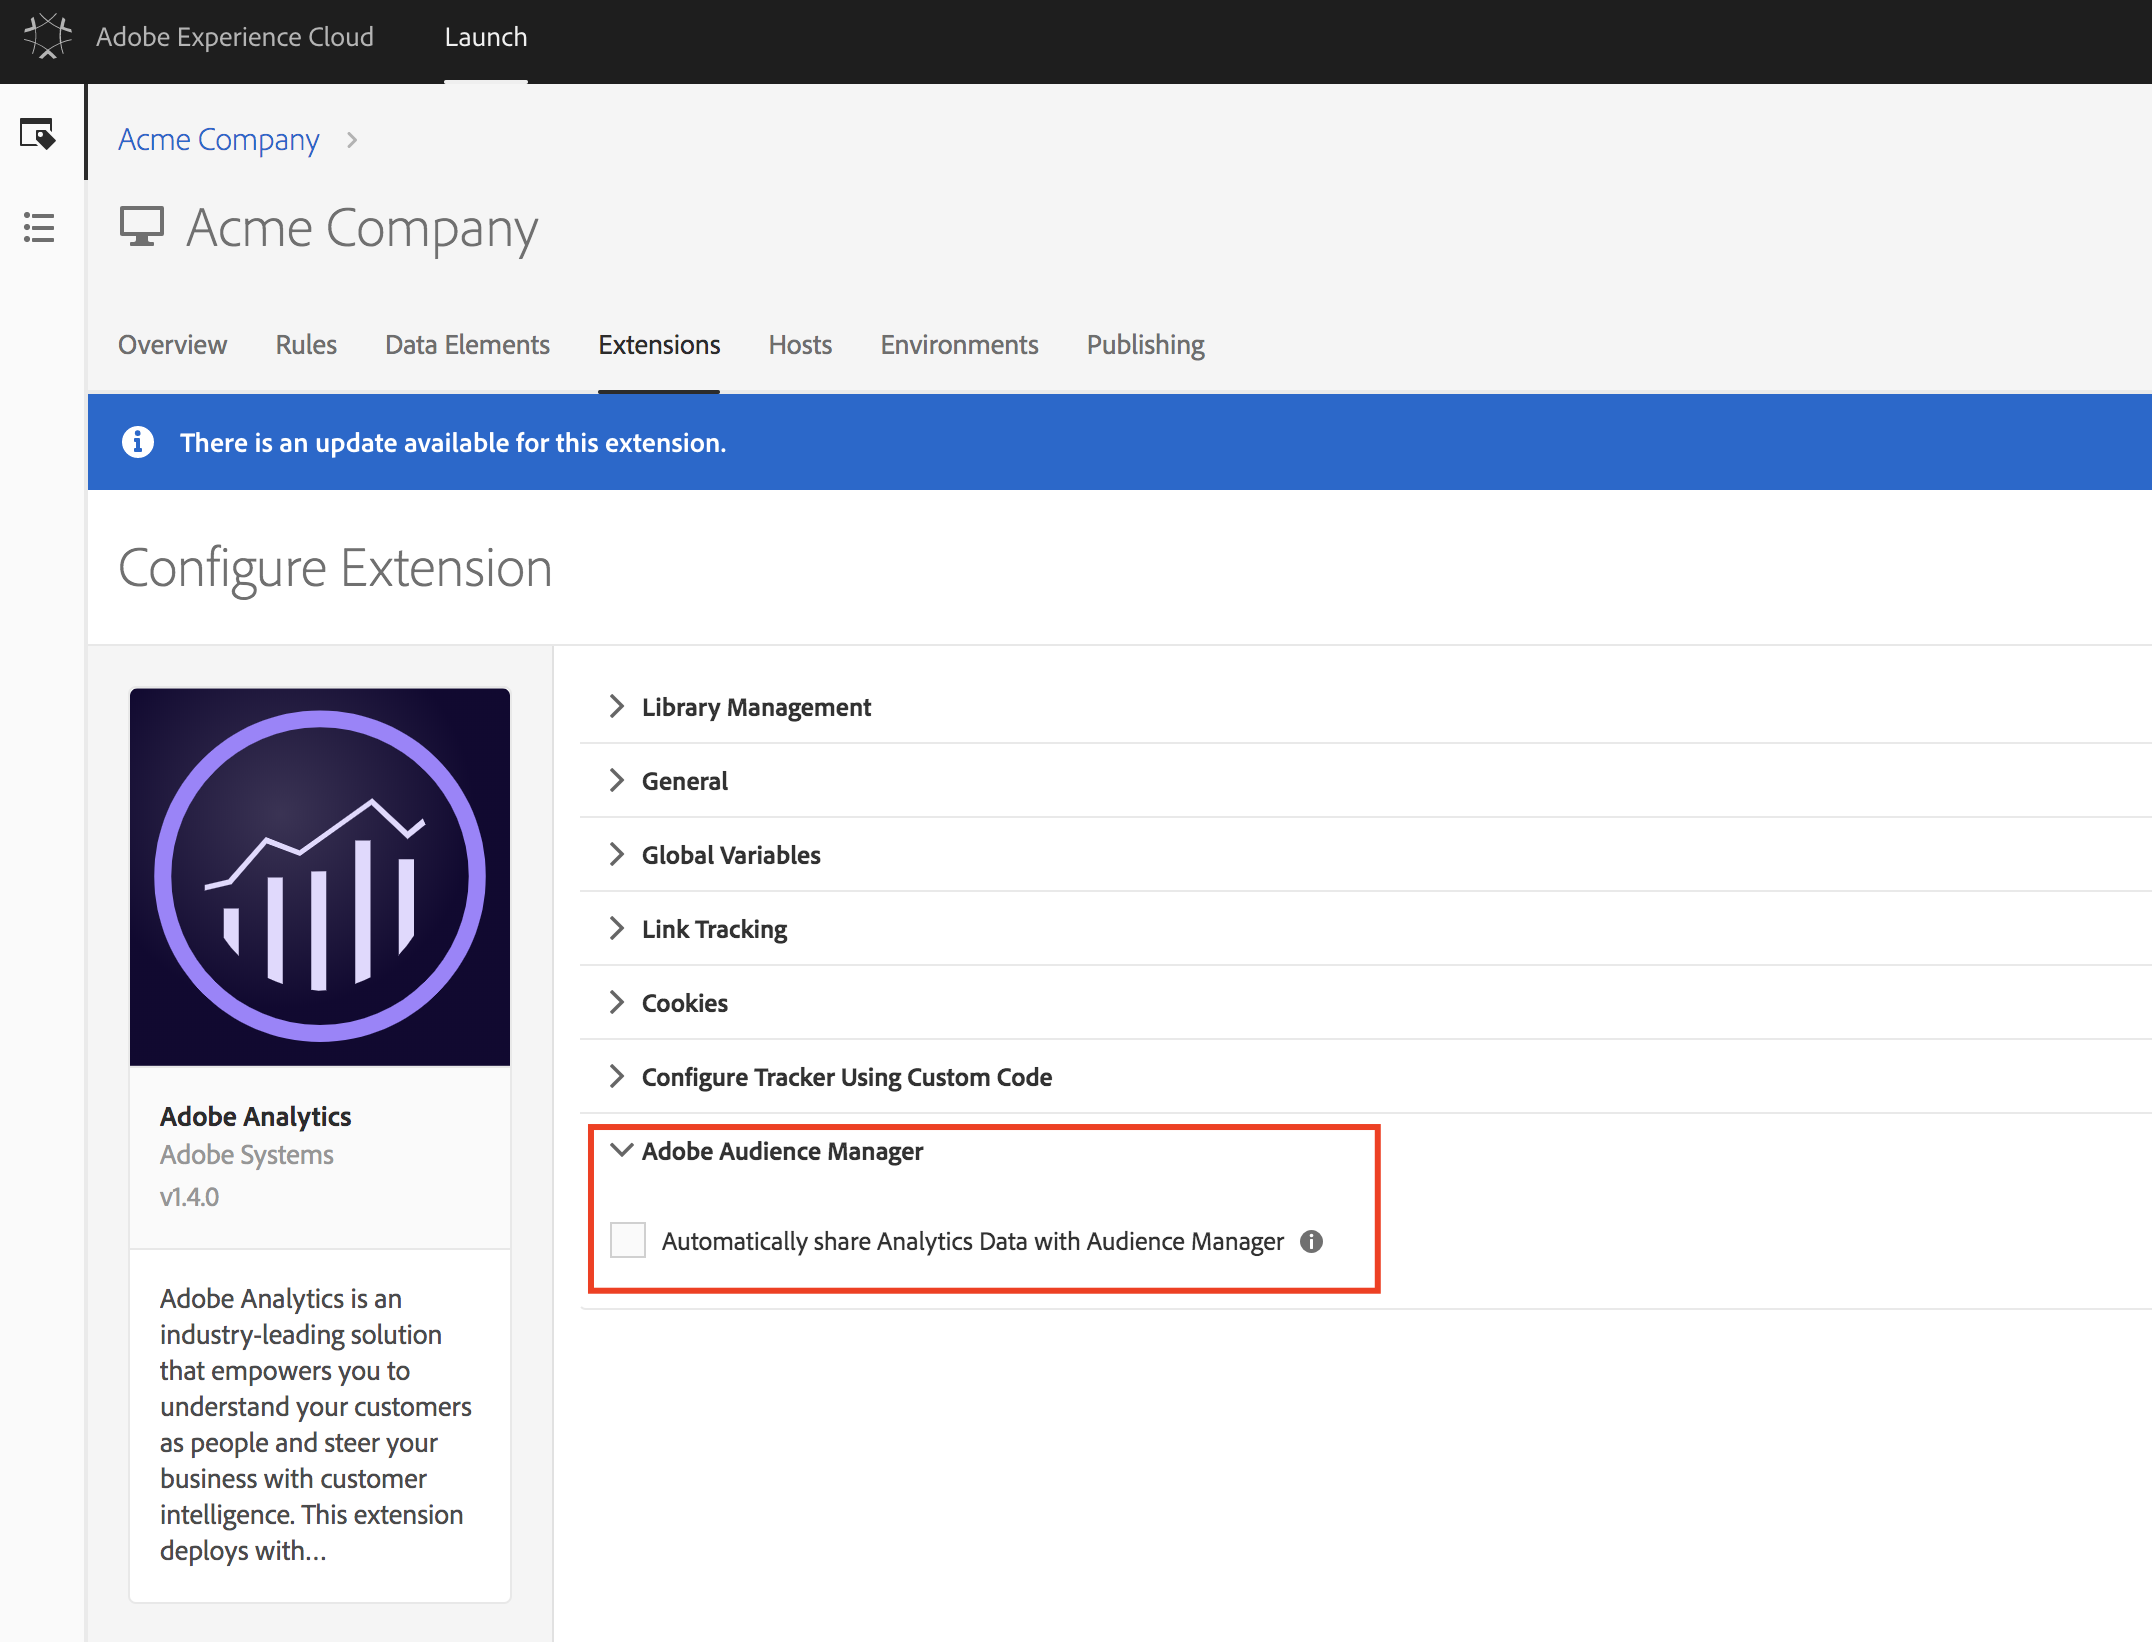 How to enable data sharing from the Adobe Analytics extension to Audience Manager